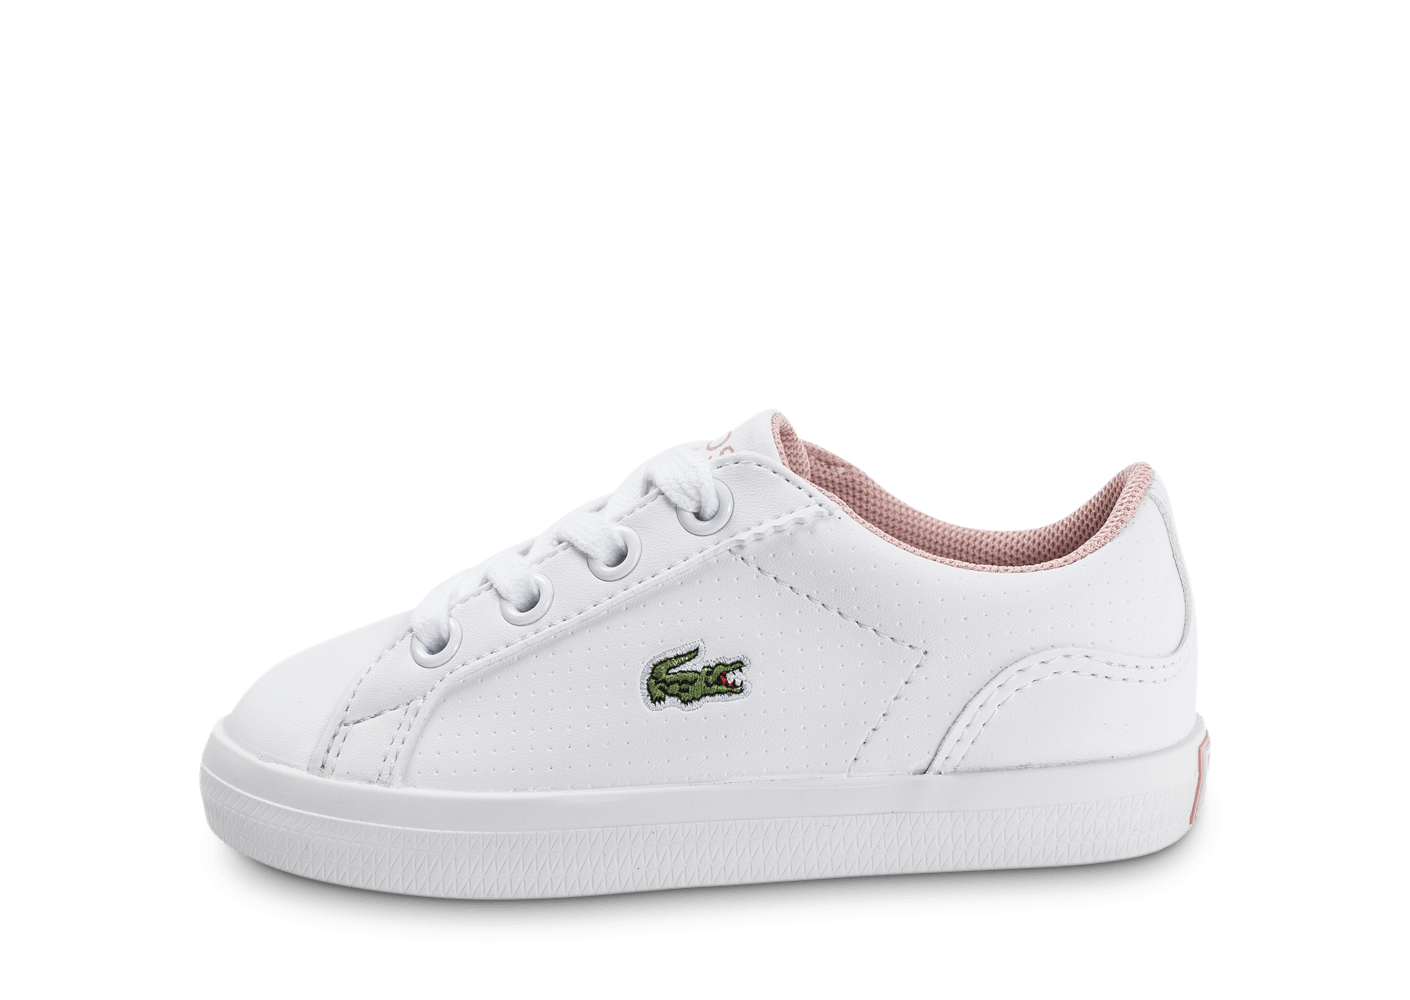 Lacoste Chaussure Chaussure Lacoste Bebe Fille Fille Chaussure Lacoste Bebe Bebe 0USvgTqx